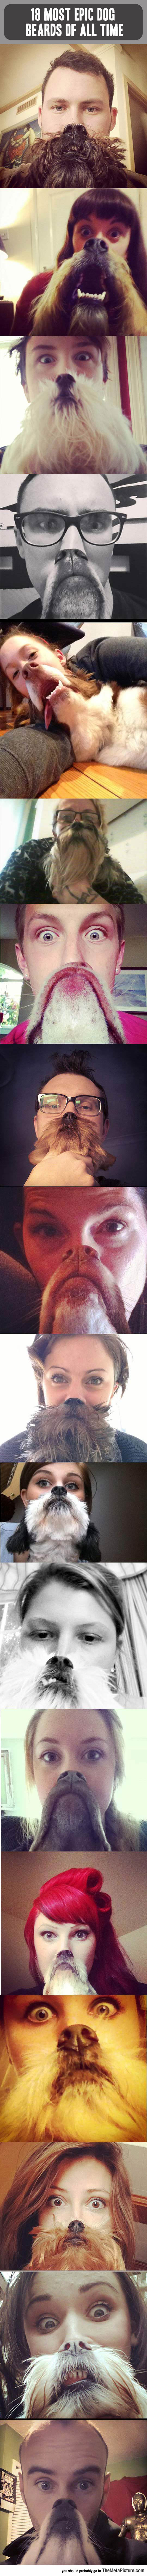 funny-dog-beards-owners